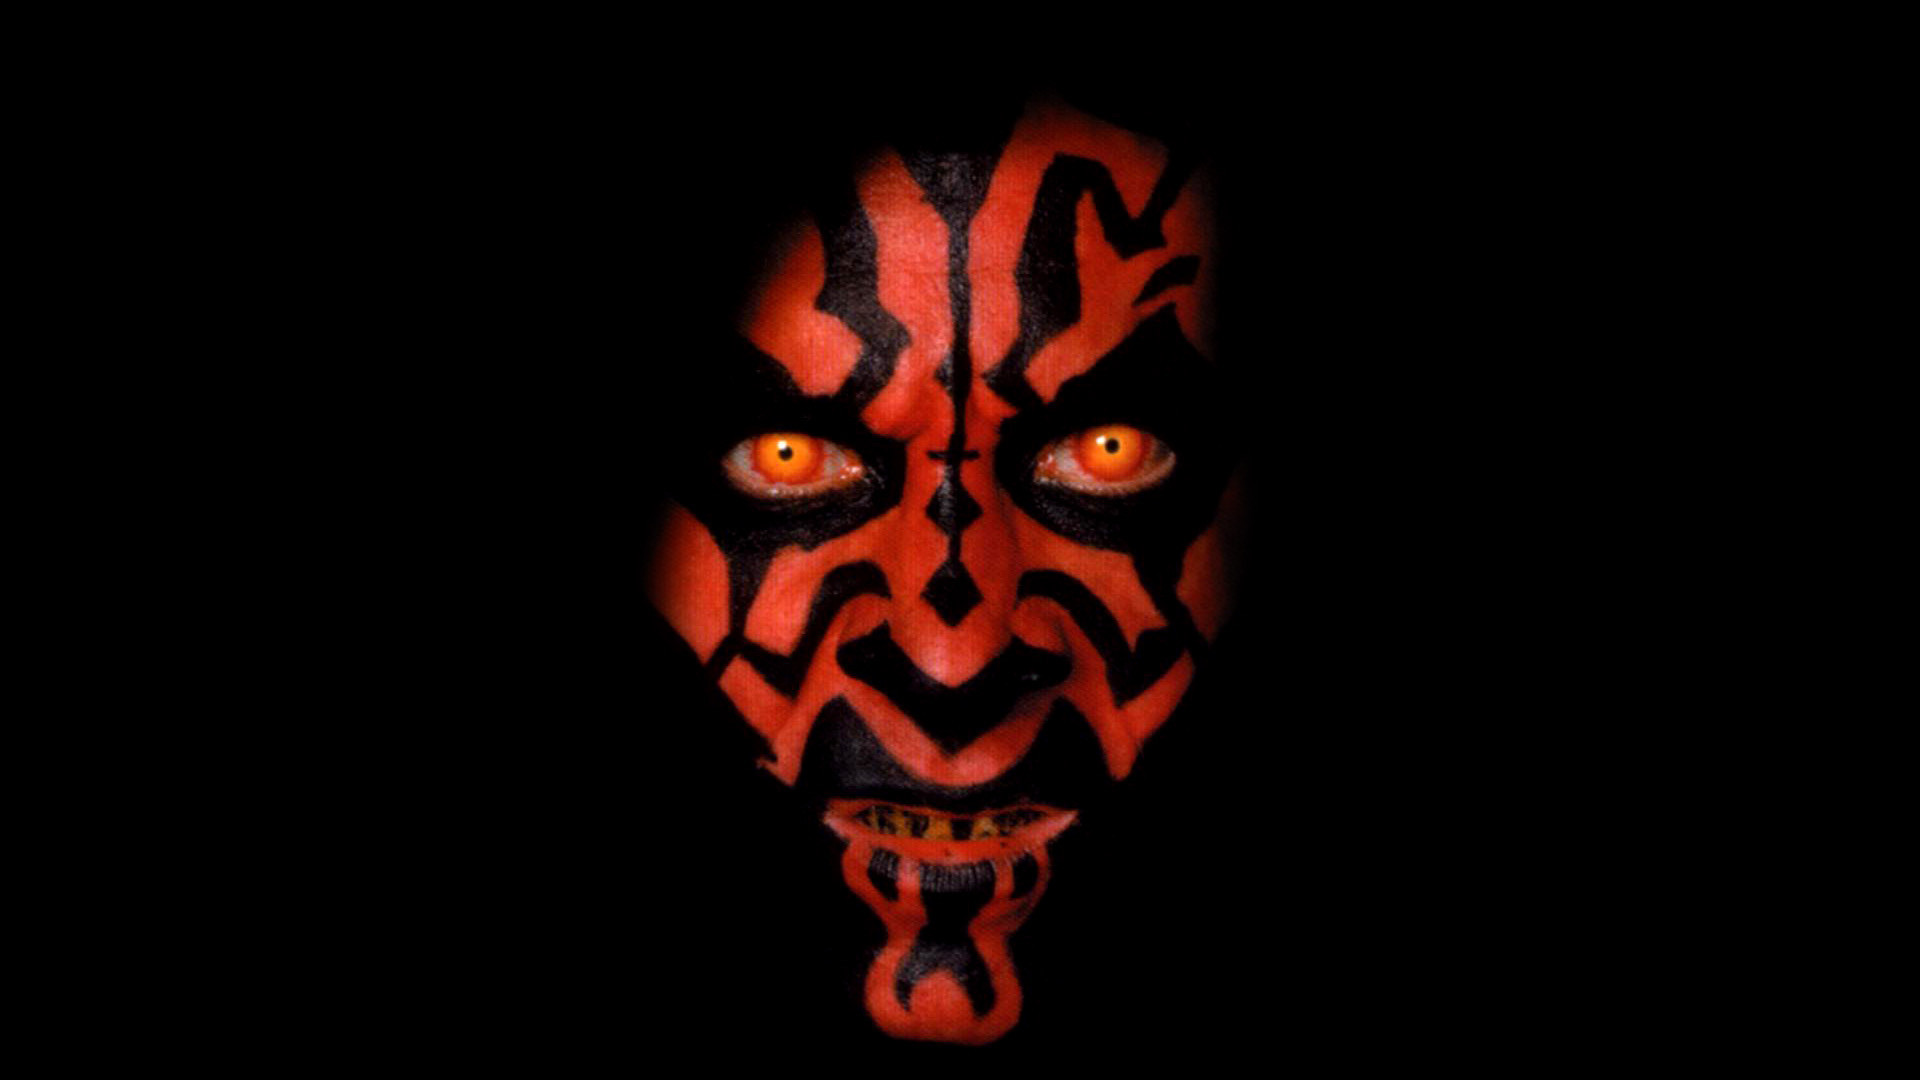 Darth Maul Face Wallpaper 2